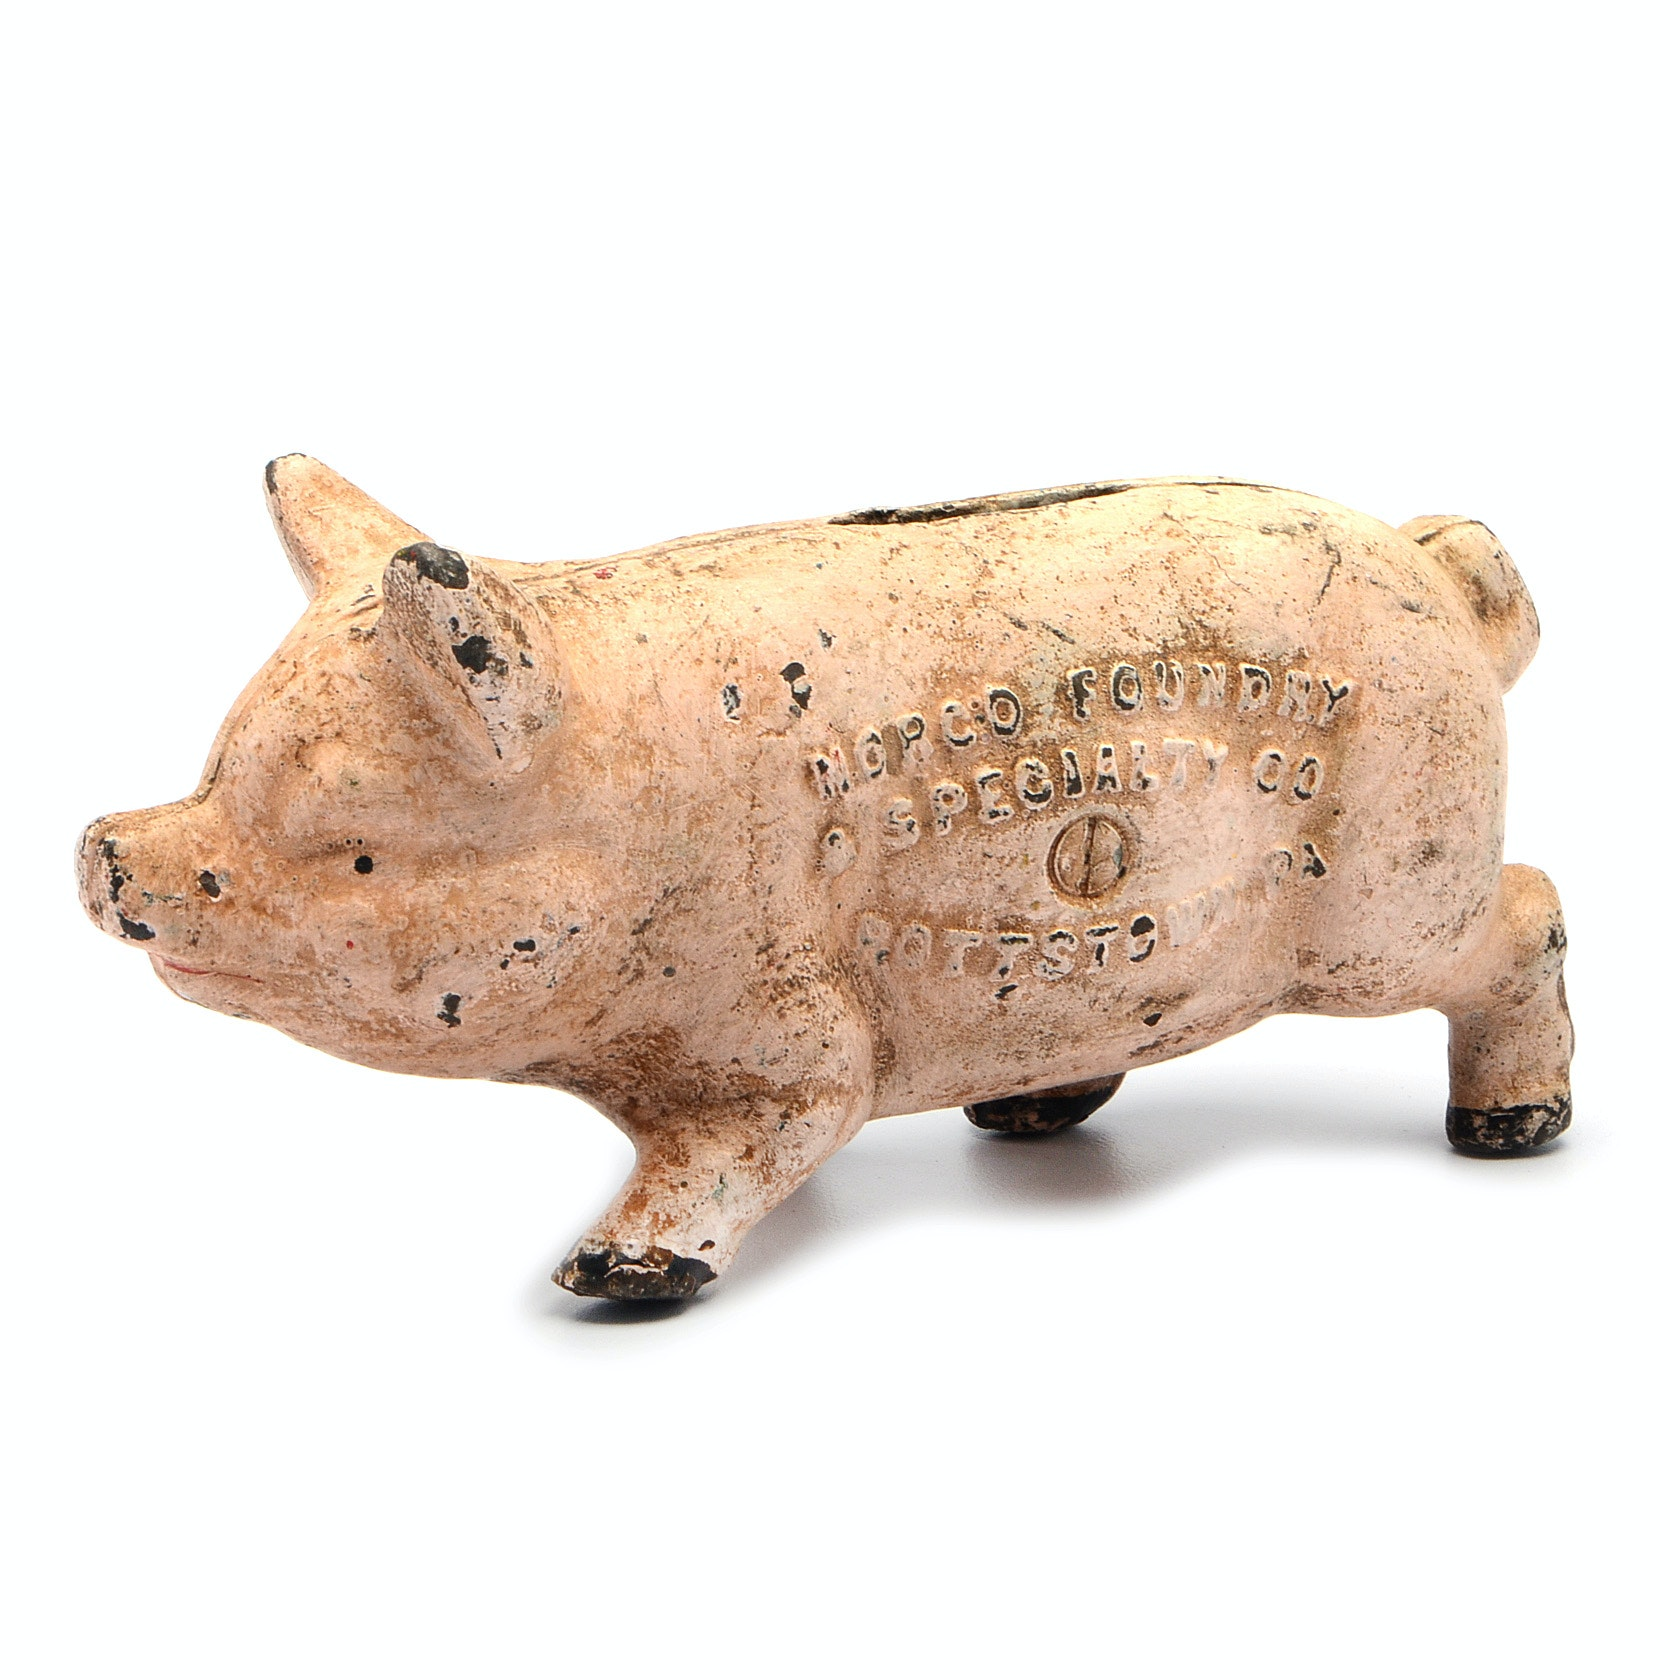 Vintage Advertising Cast Iron Pig Bank